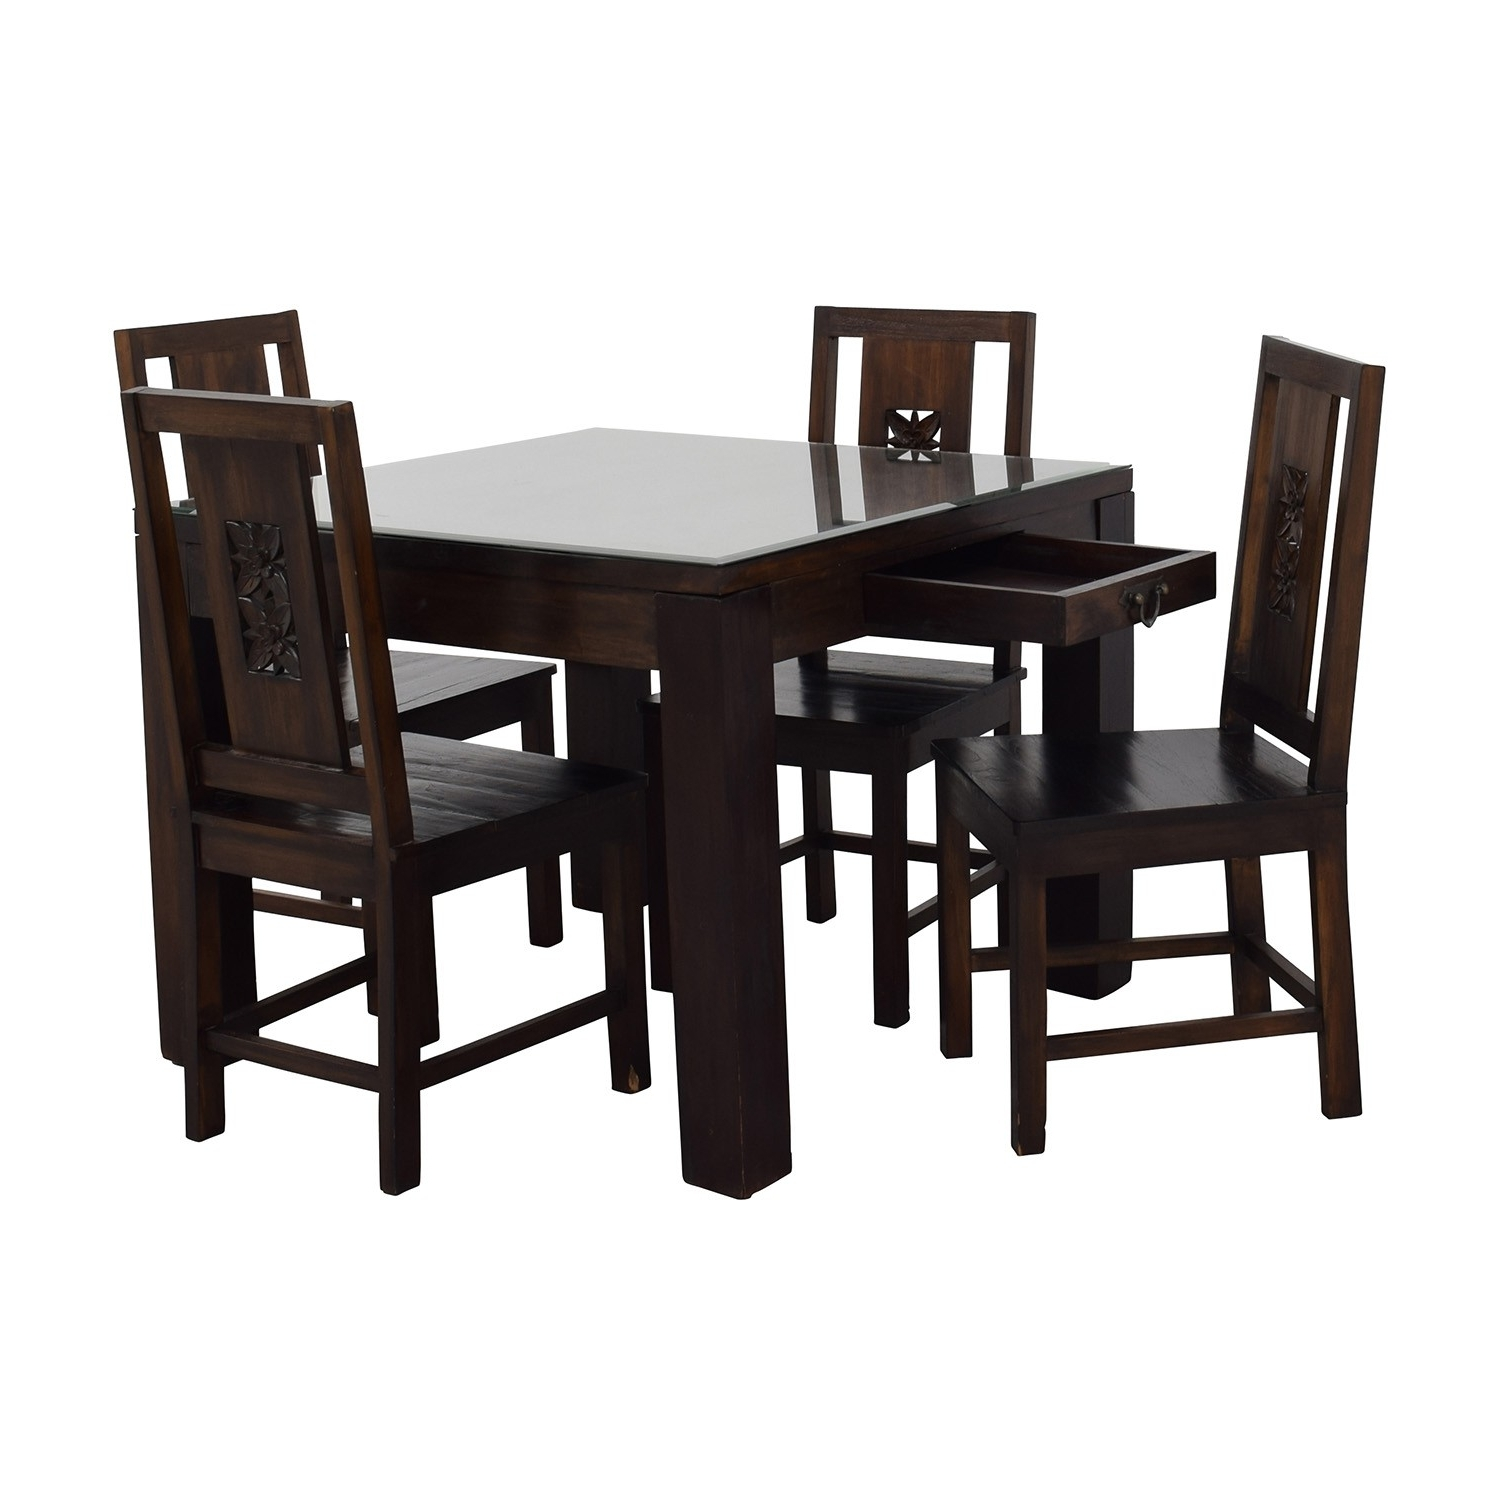 Balinese Dining Tables In Well Known Used Dining Table Sets Best Of Off Balinese Teak Dining Table Set (View 12 of 25)